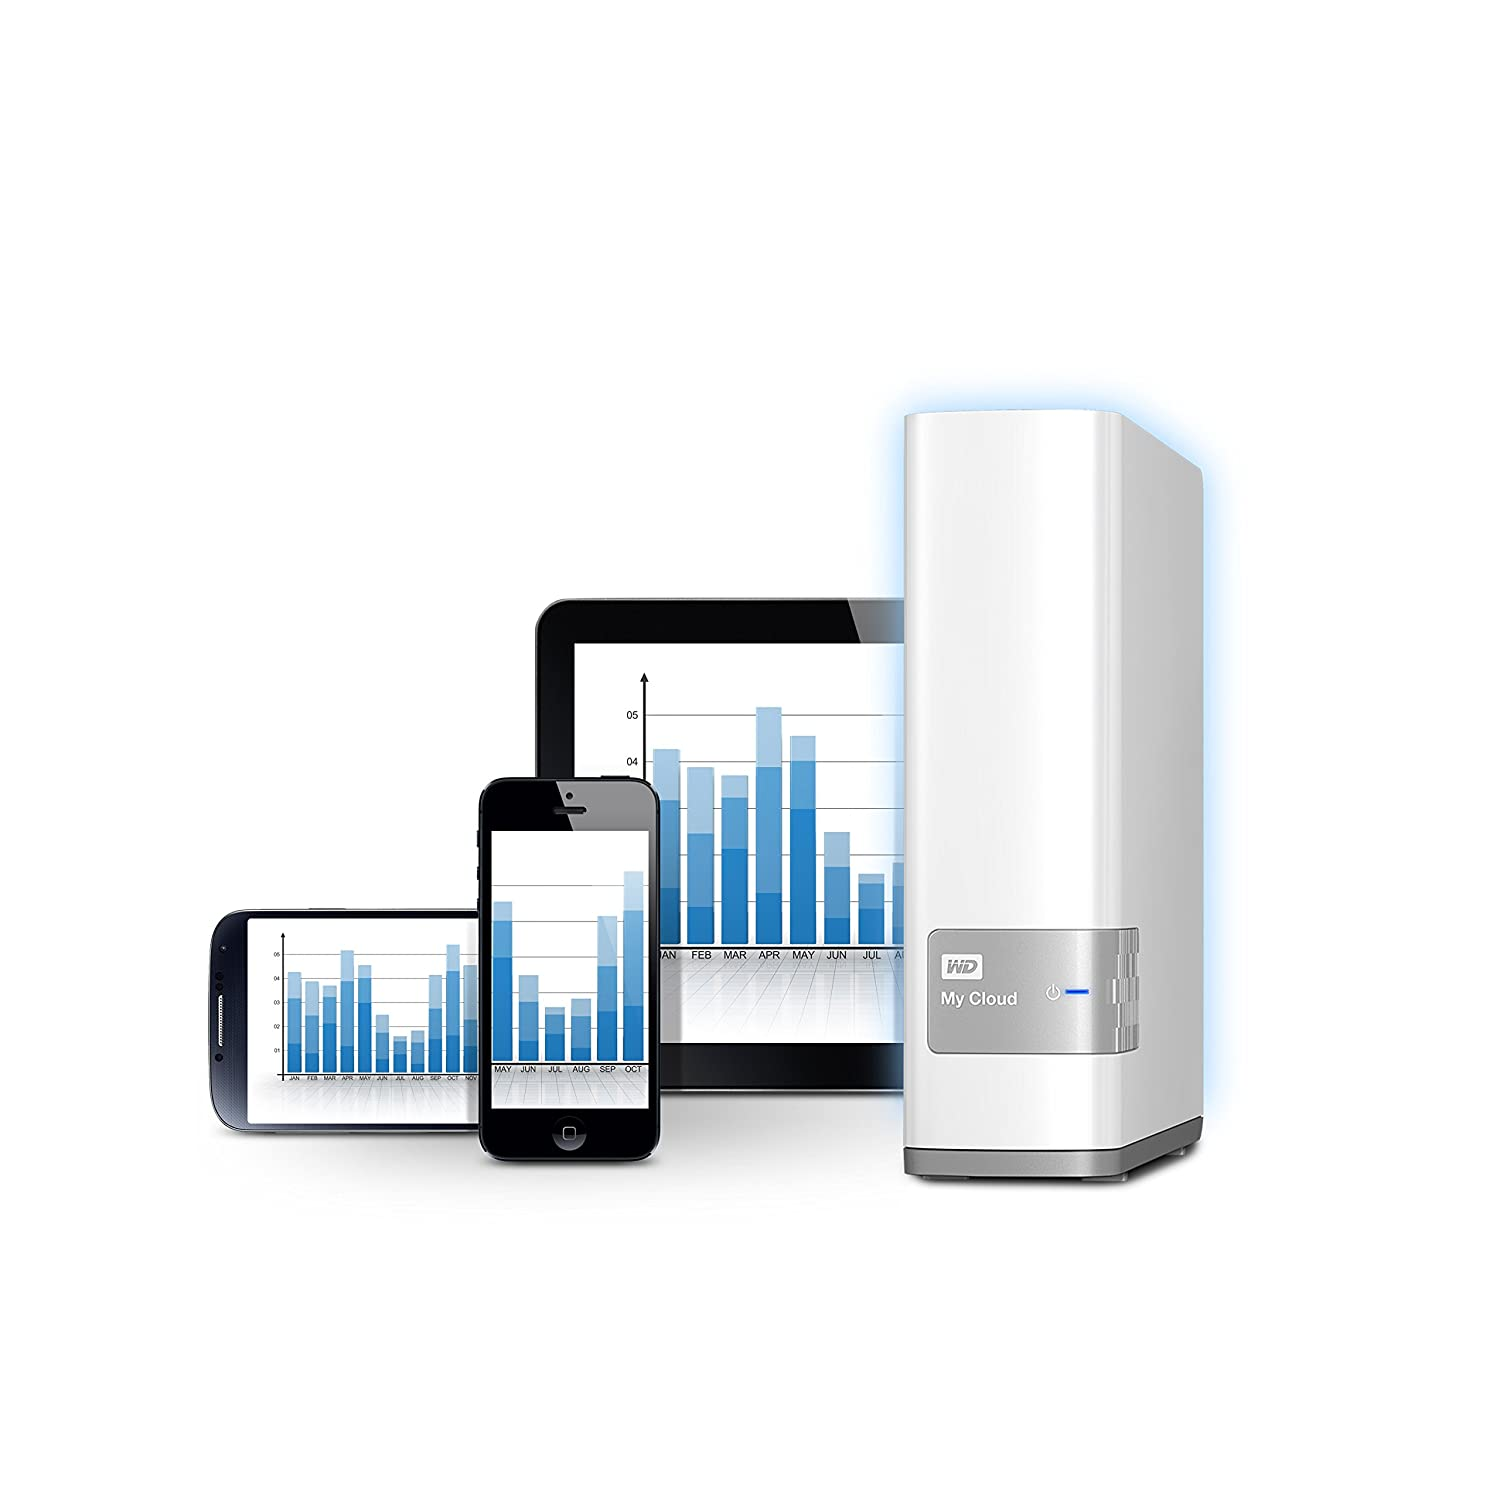 WD My Cloud Personal Network Attached Storage